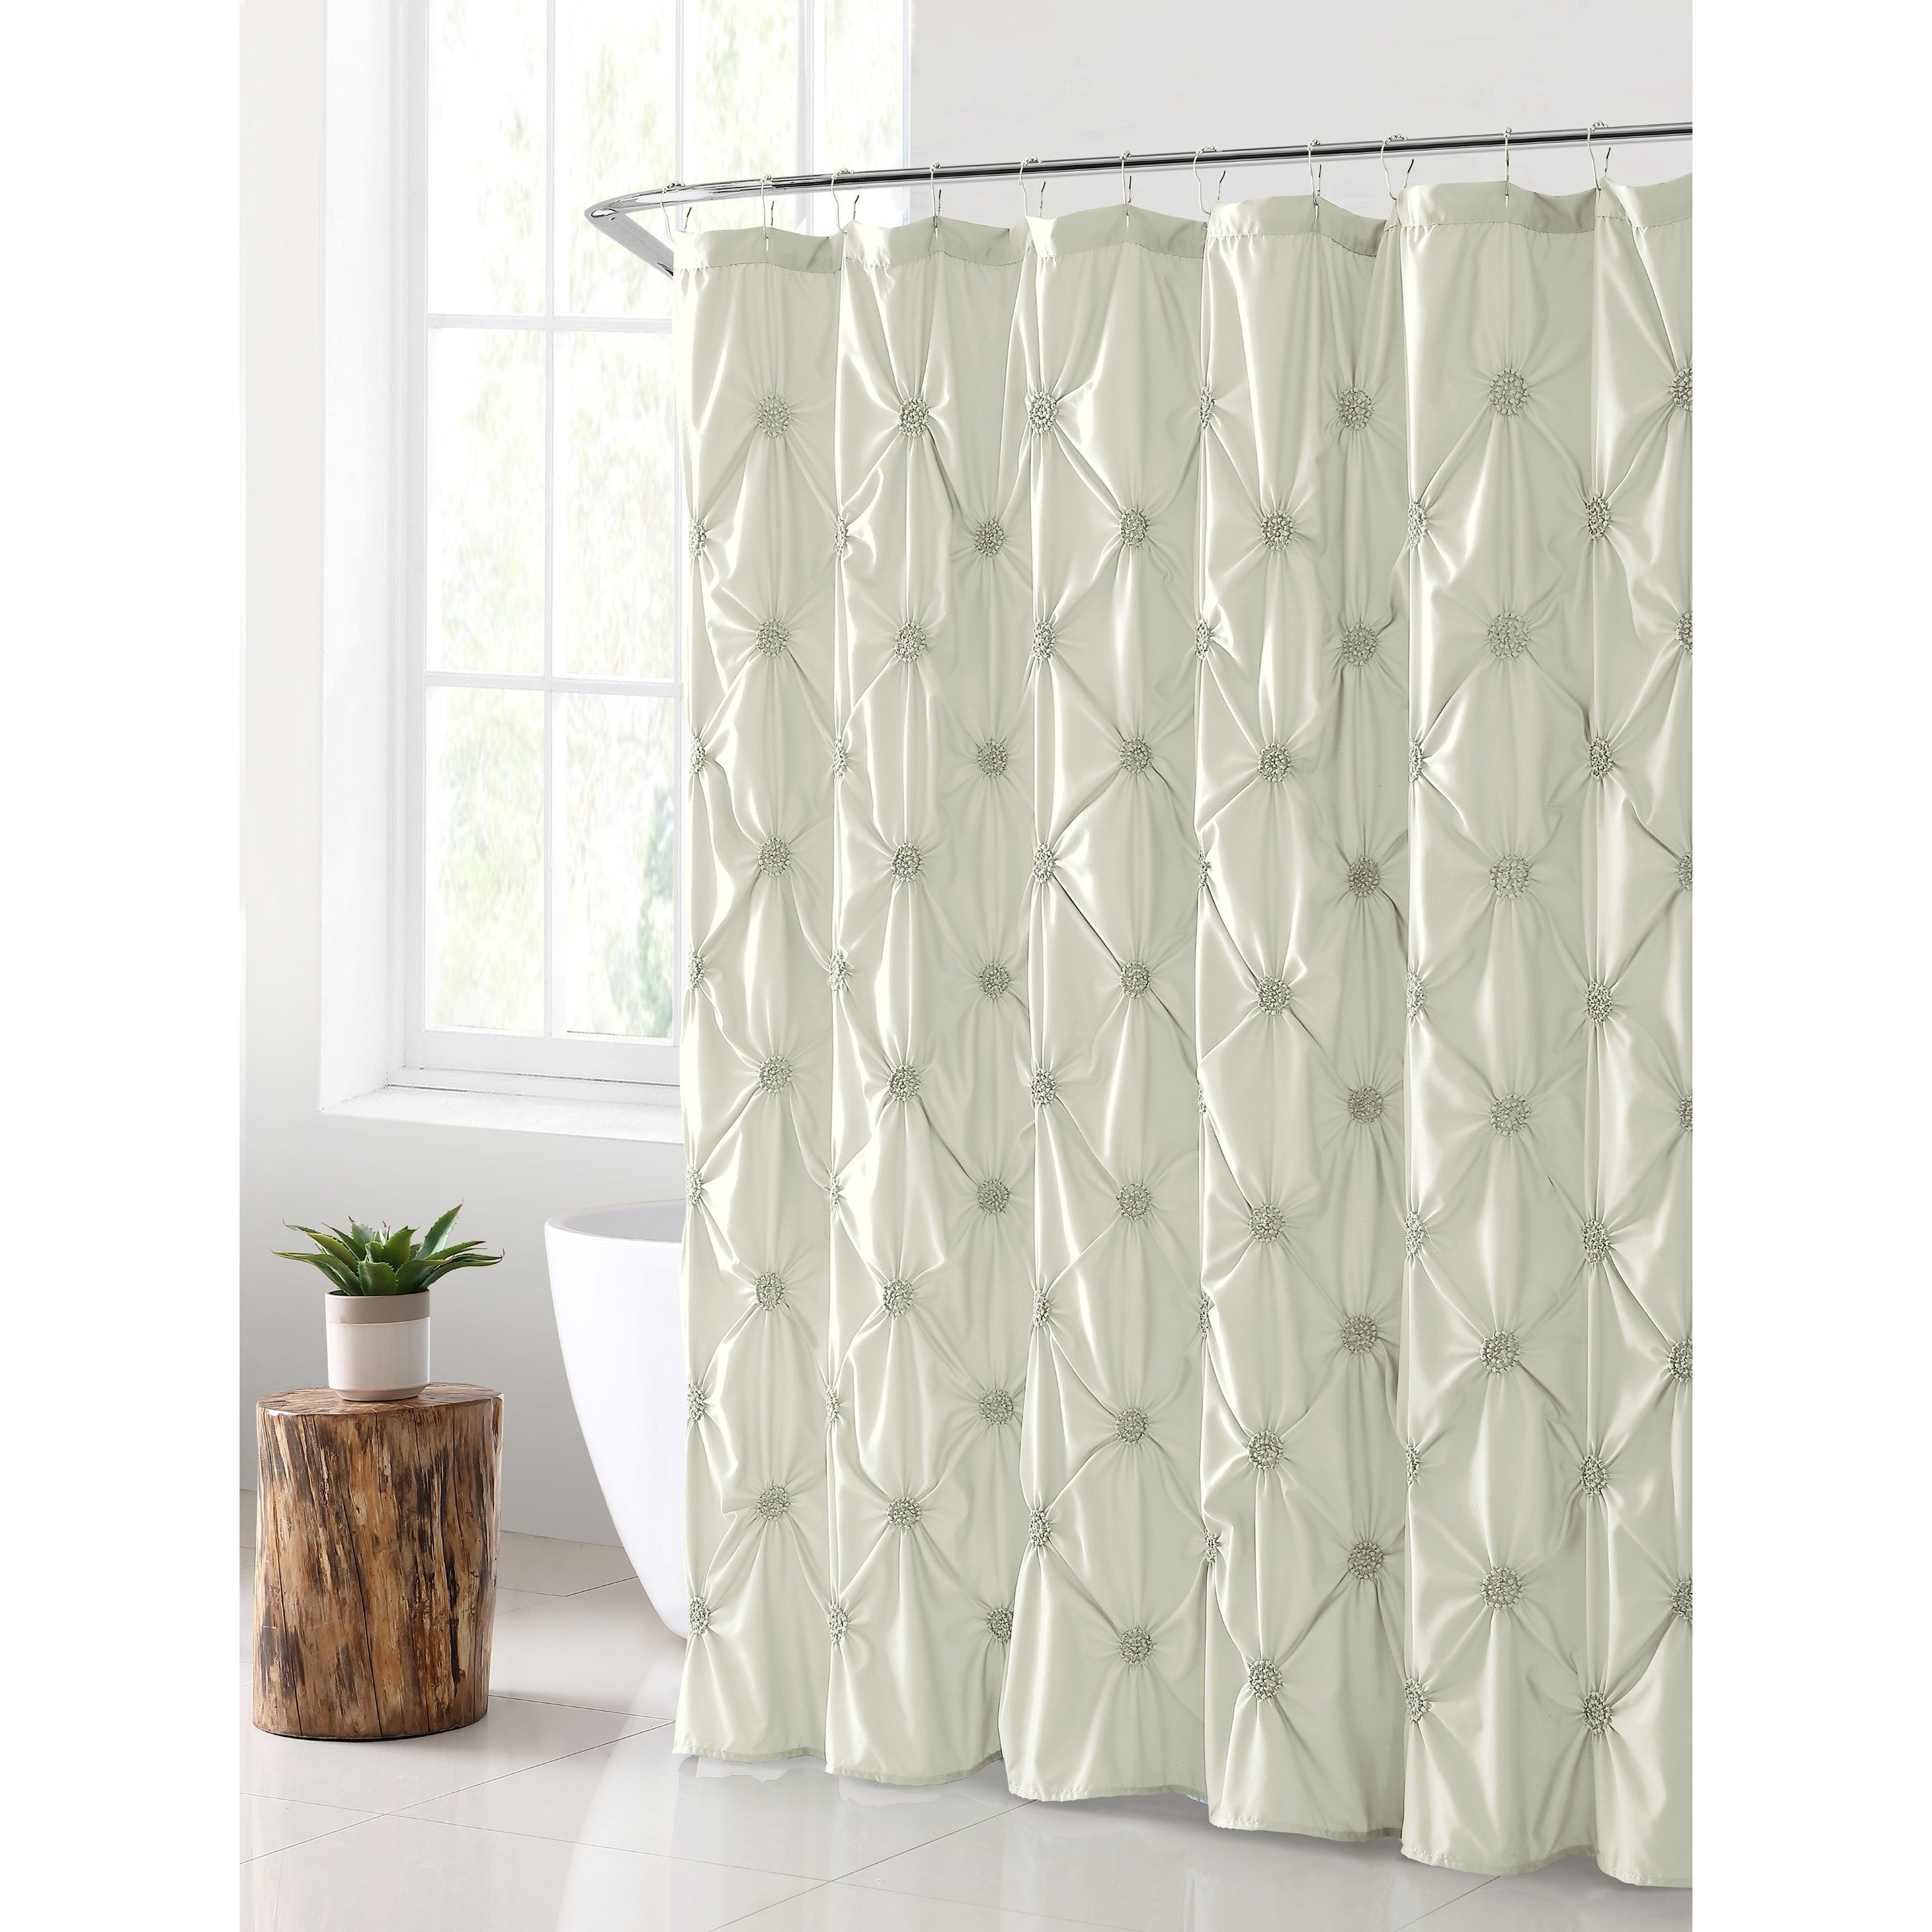 mainstays curtain meadow resistant curtains water peva ip walmart stained shower com glass